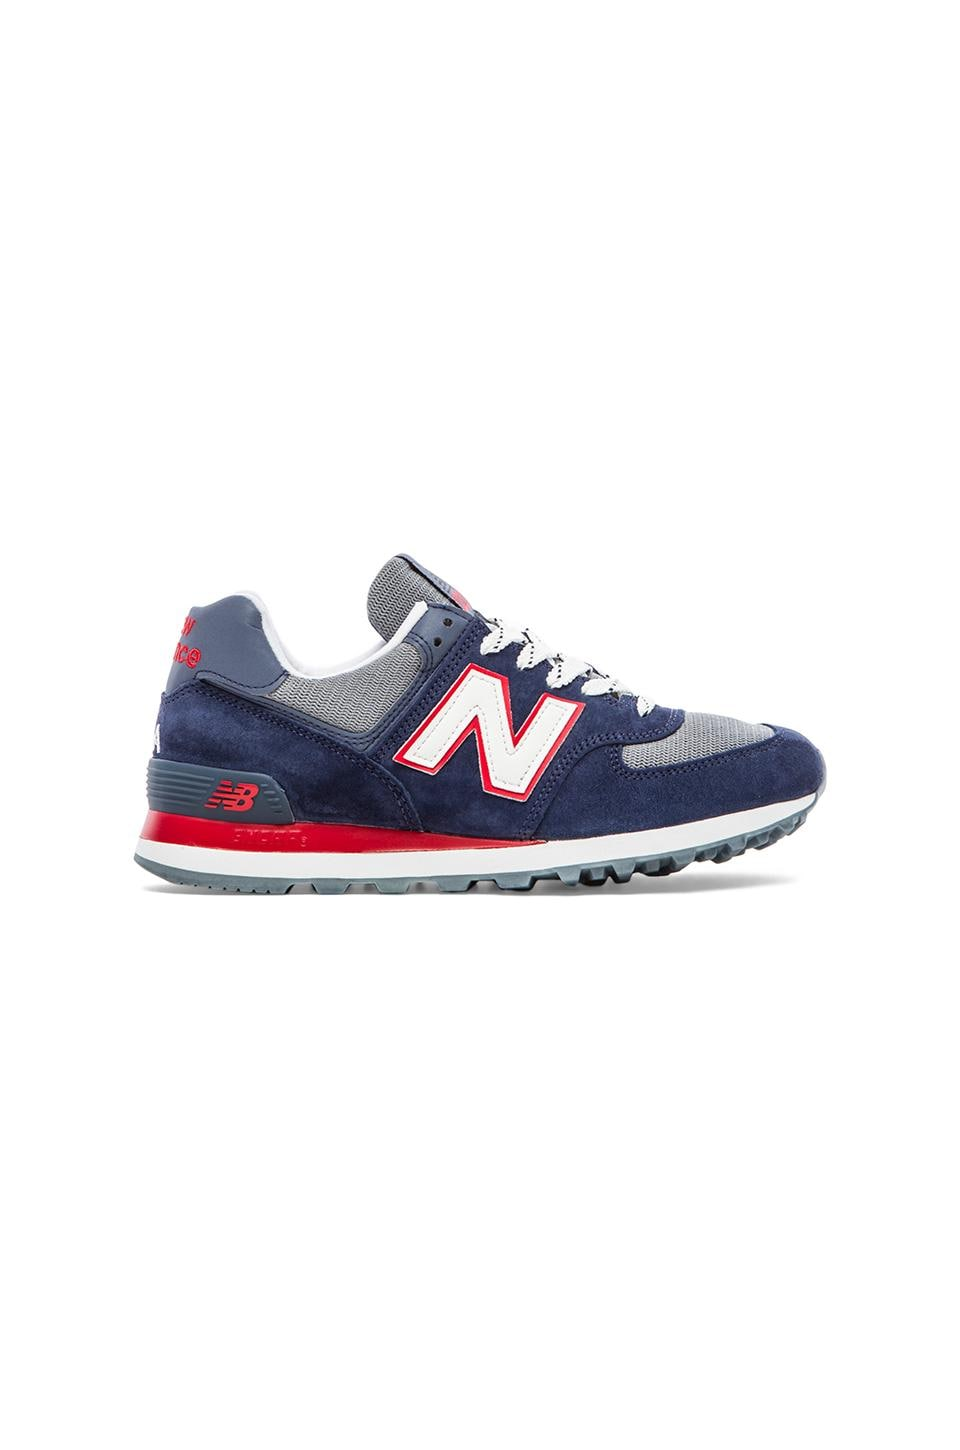 New Balance Made in USA US574 in Blue/Red